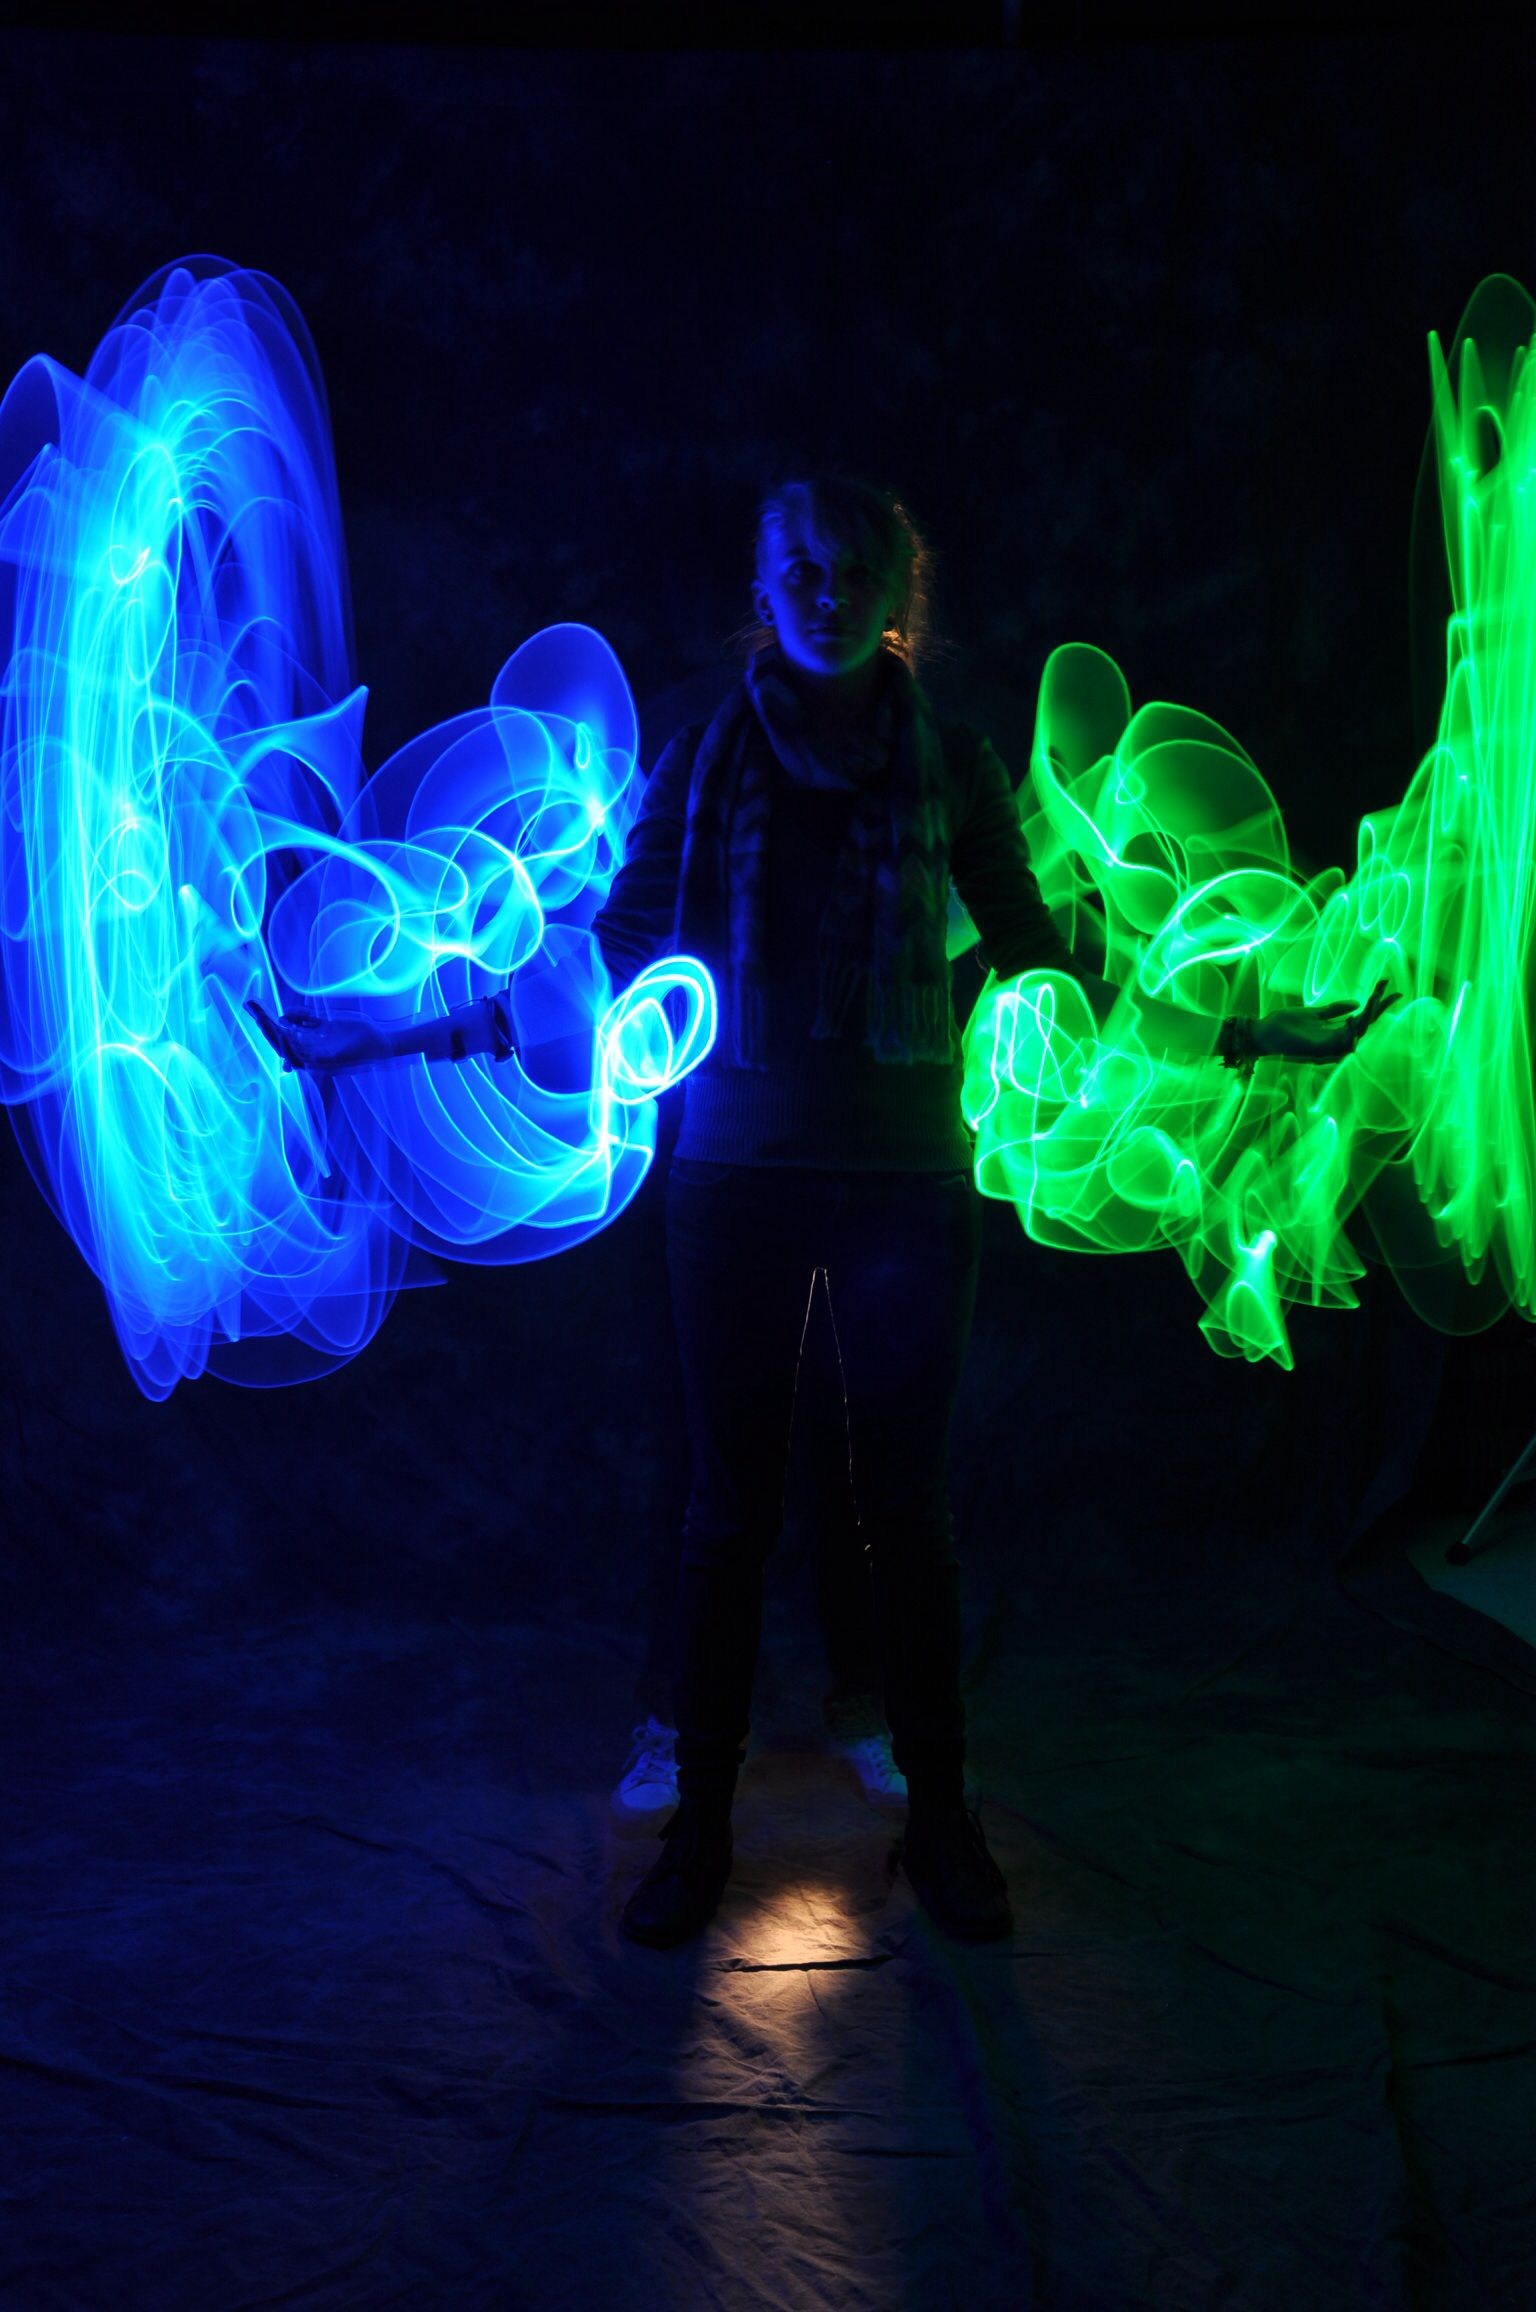 Pin By Taylor Bragg On Art Light Painting Photography Neon Photography Exposure Photography